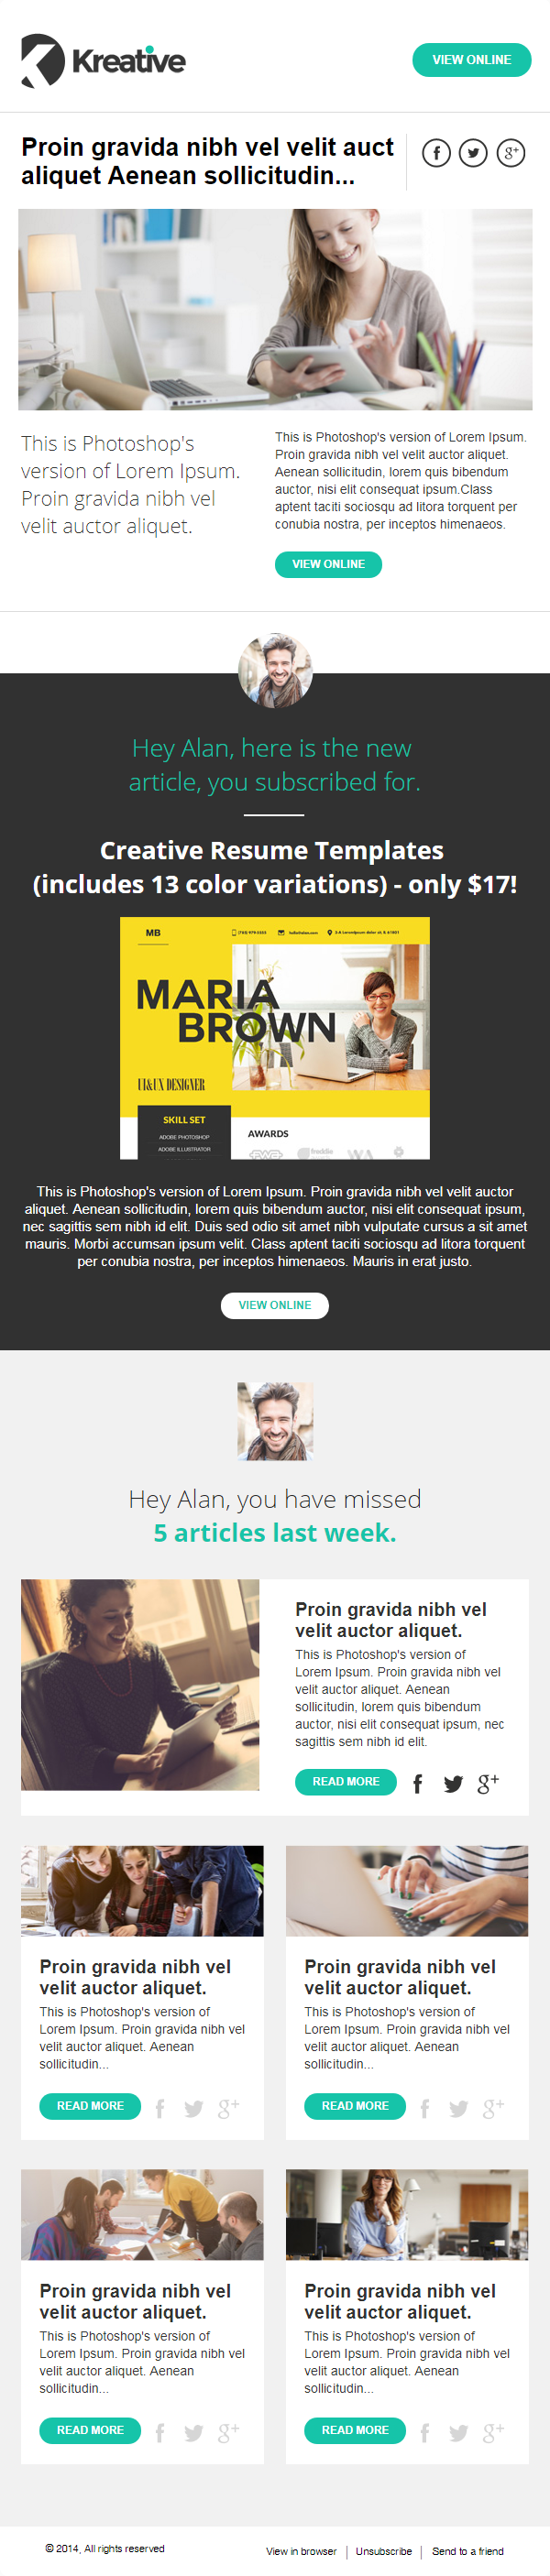 80 Free Mailchimp Templates To Kick Start Your Email Marketing